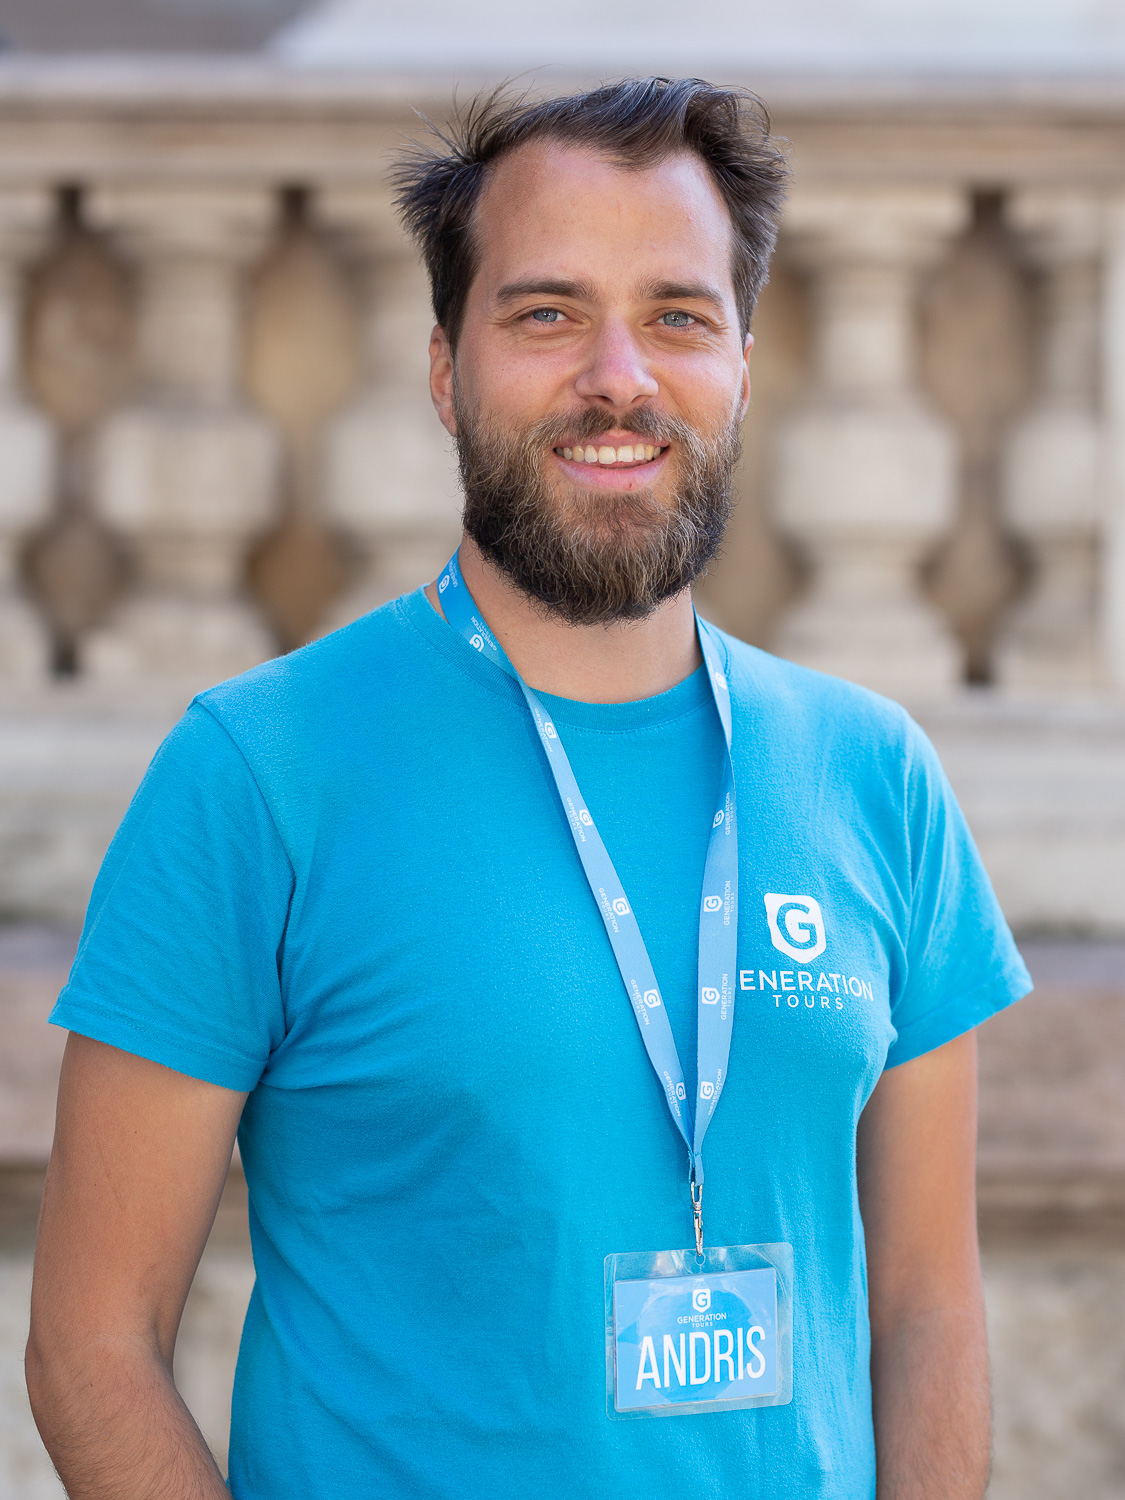 A Generation Tours free Budapest walking tour guide in blue t-shirt In front of St. Stephen's Basilica